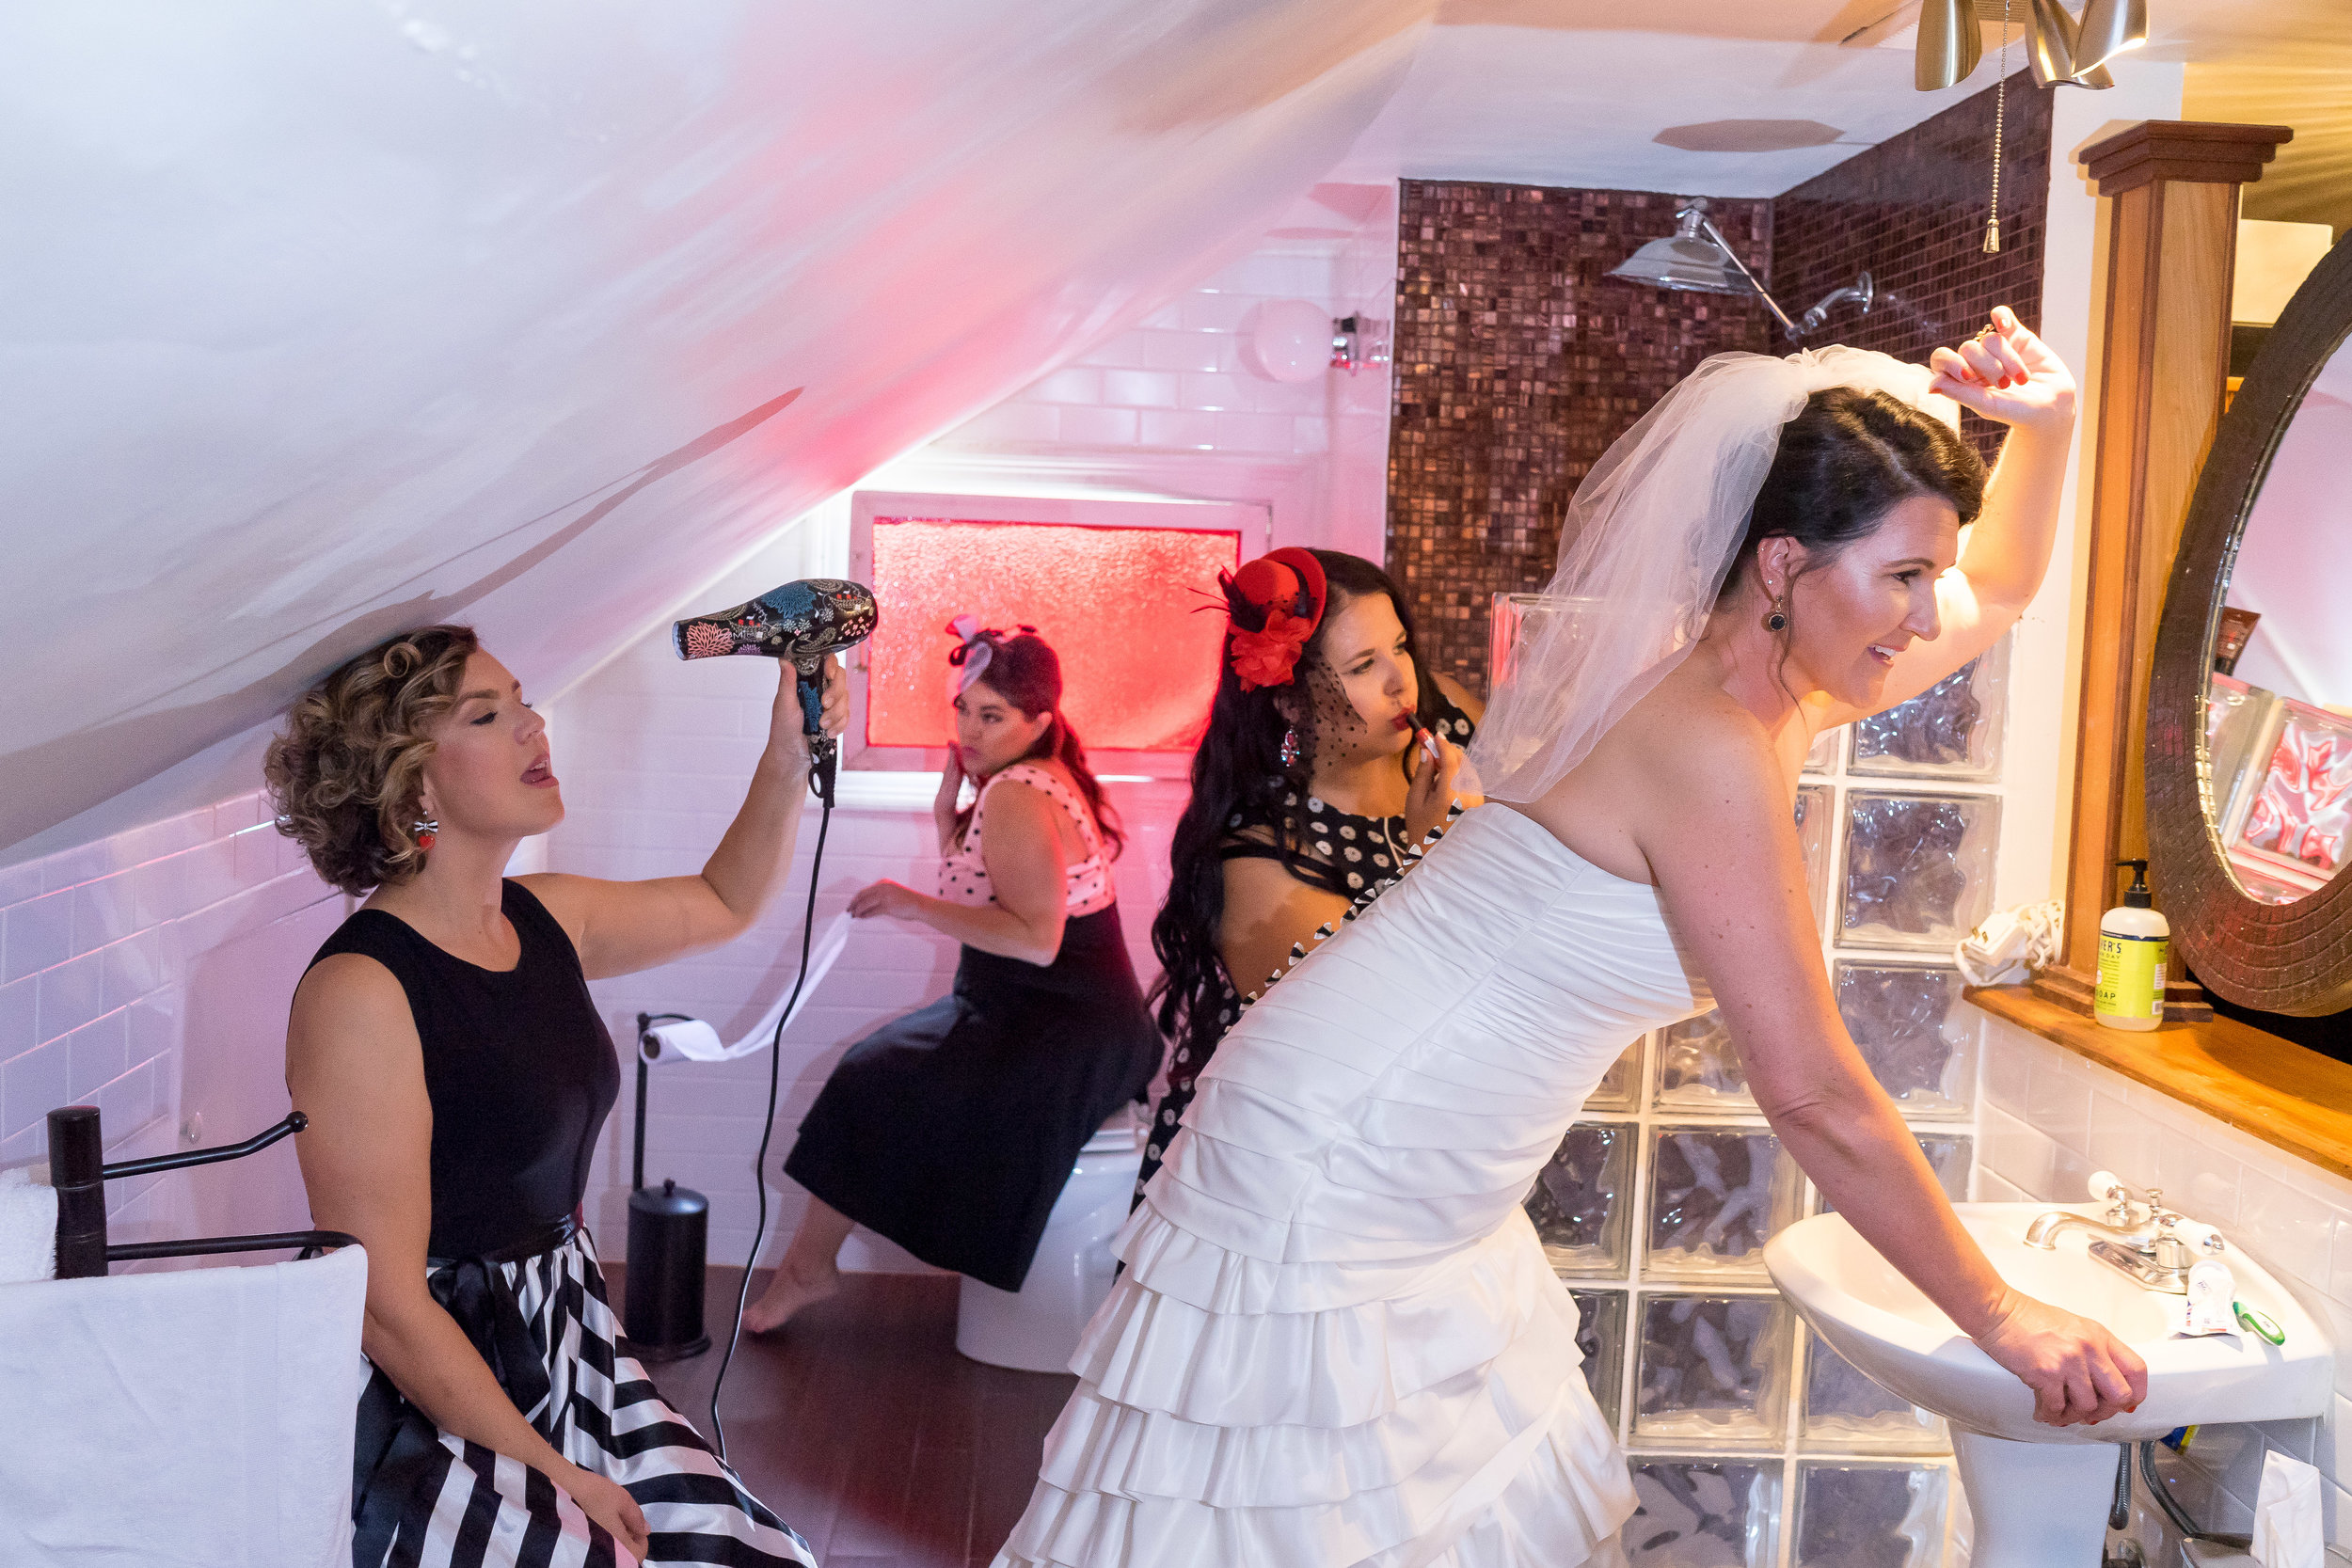 candid image of bride and bridesmaids getting ready in bathroom commercial wedding photographer adam cotton